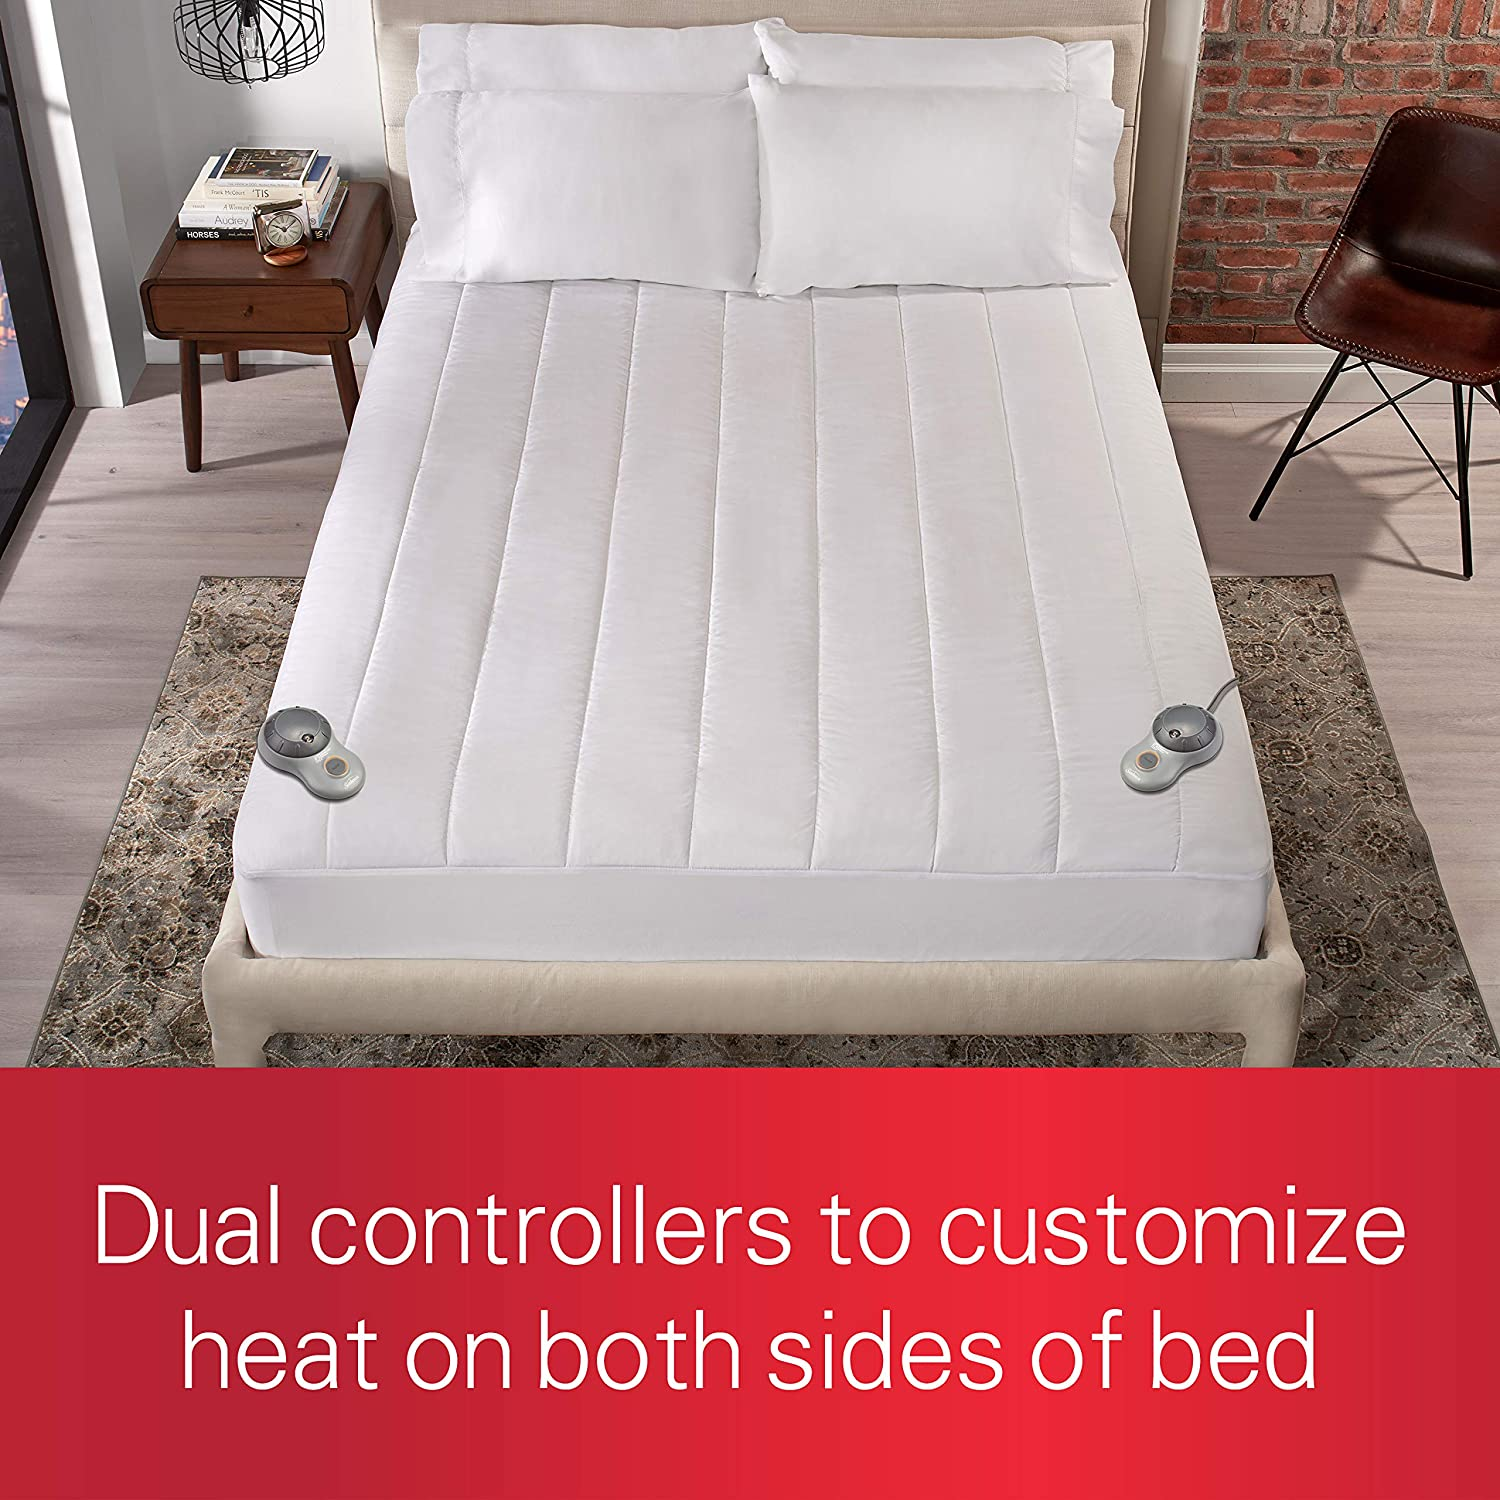 Sunbeam Heated Mattress Pad   Quilted Polyester, 10 Heat Settings, White,Queen - MSU3GQS-P000-12A00: Home & Kitchen